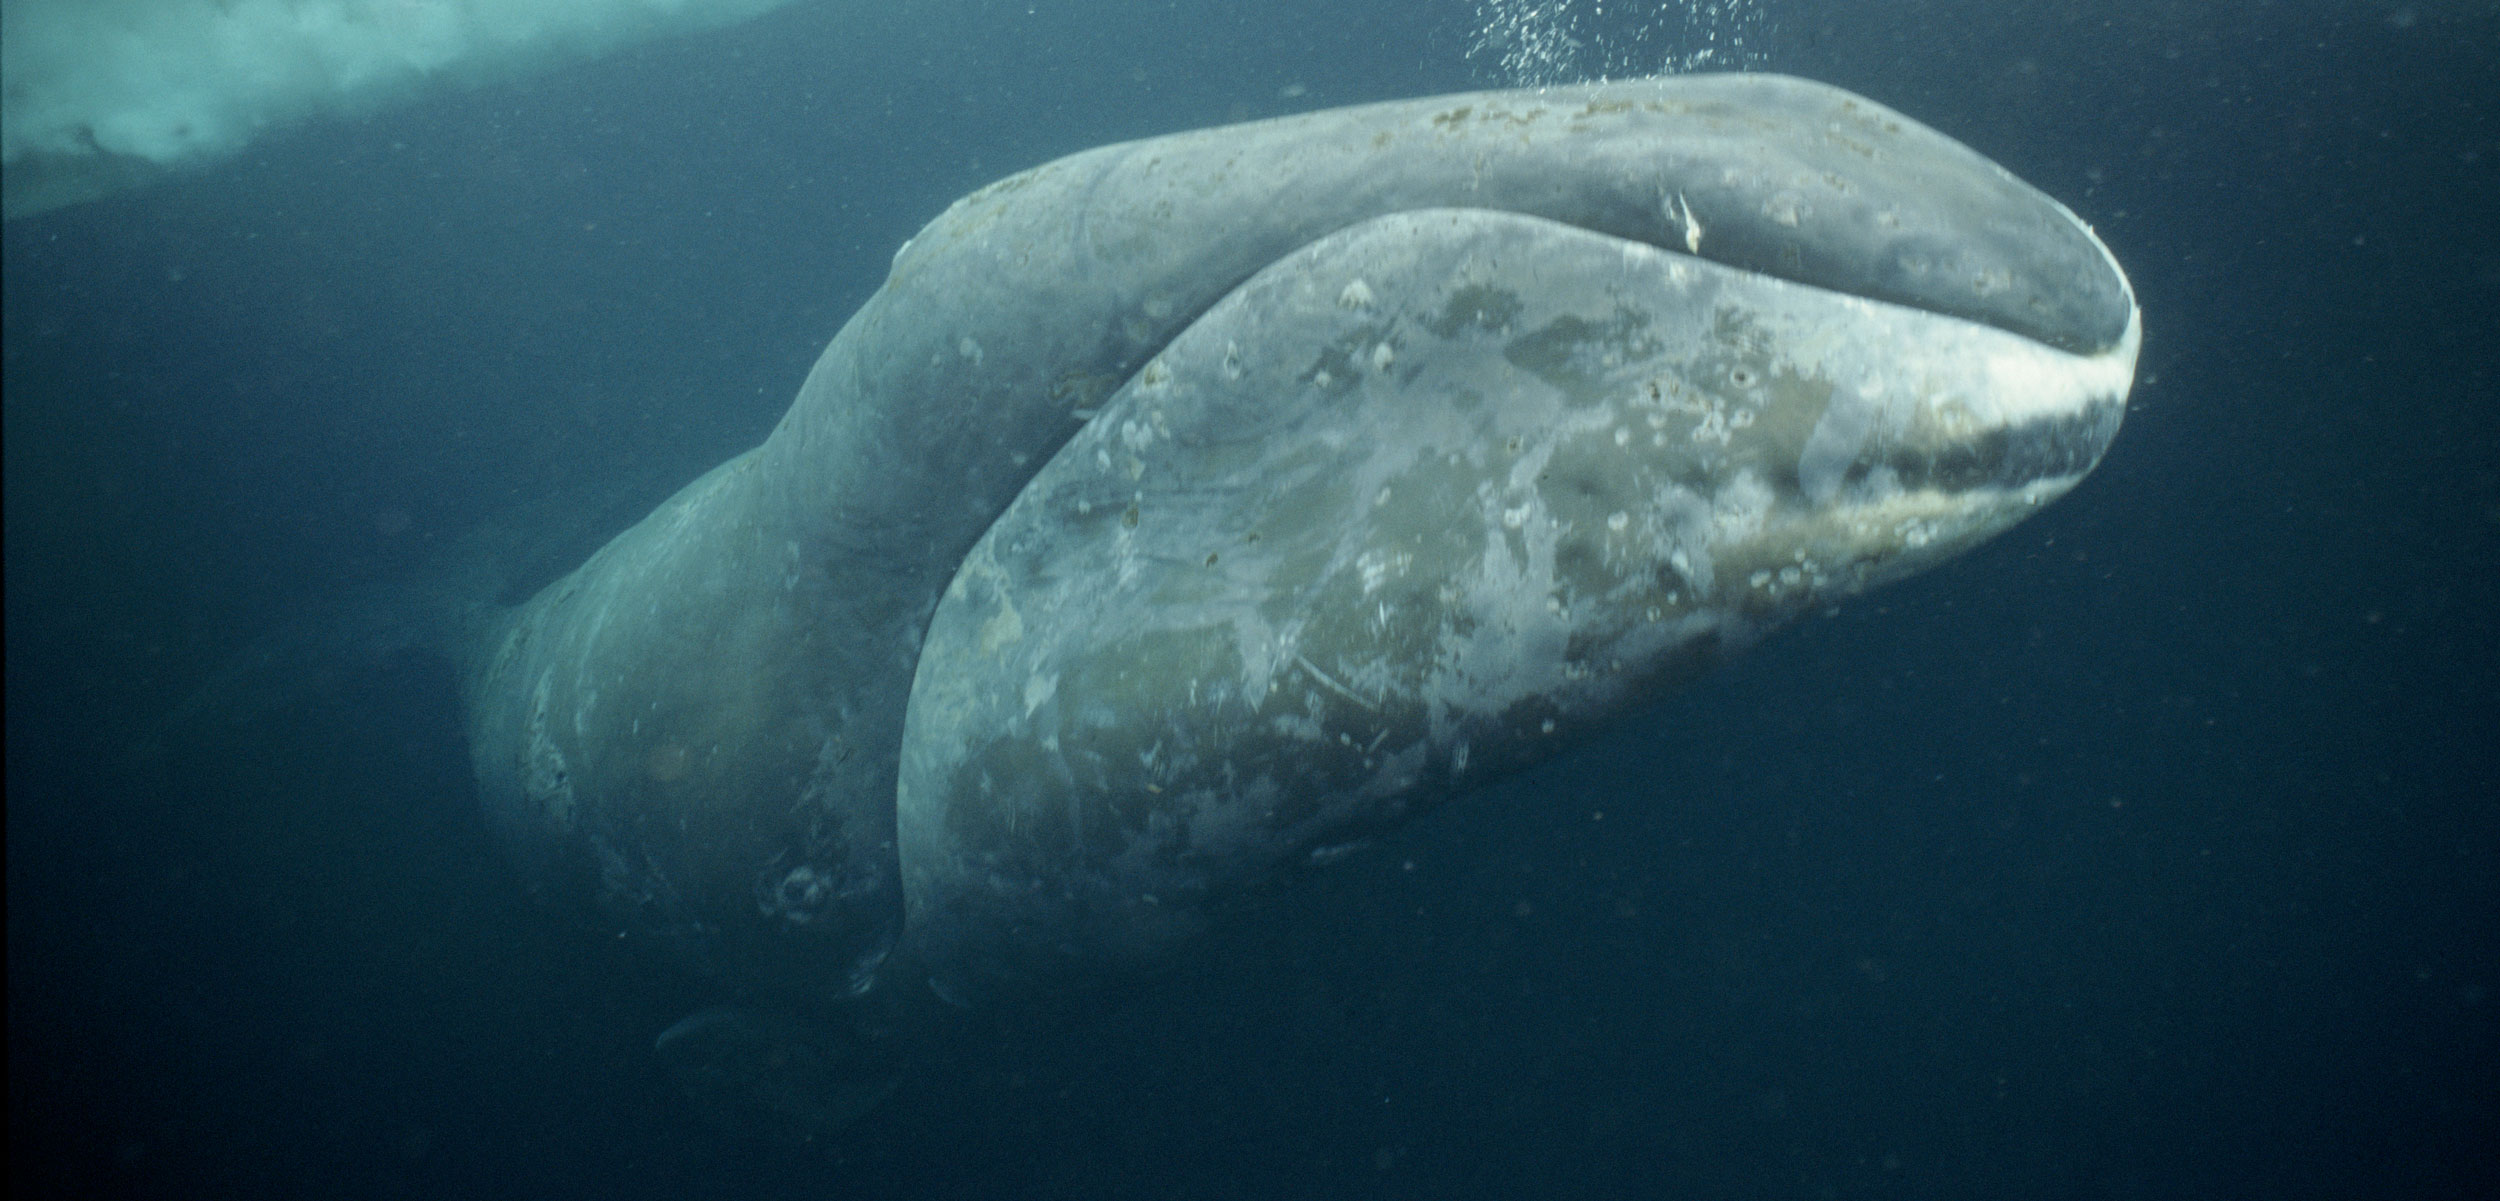 a bowhead whale in the arctic